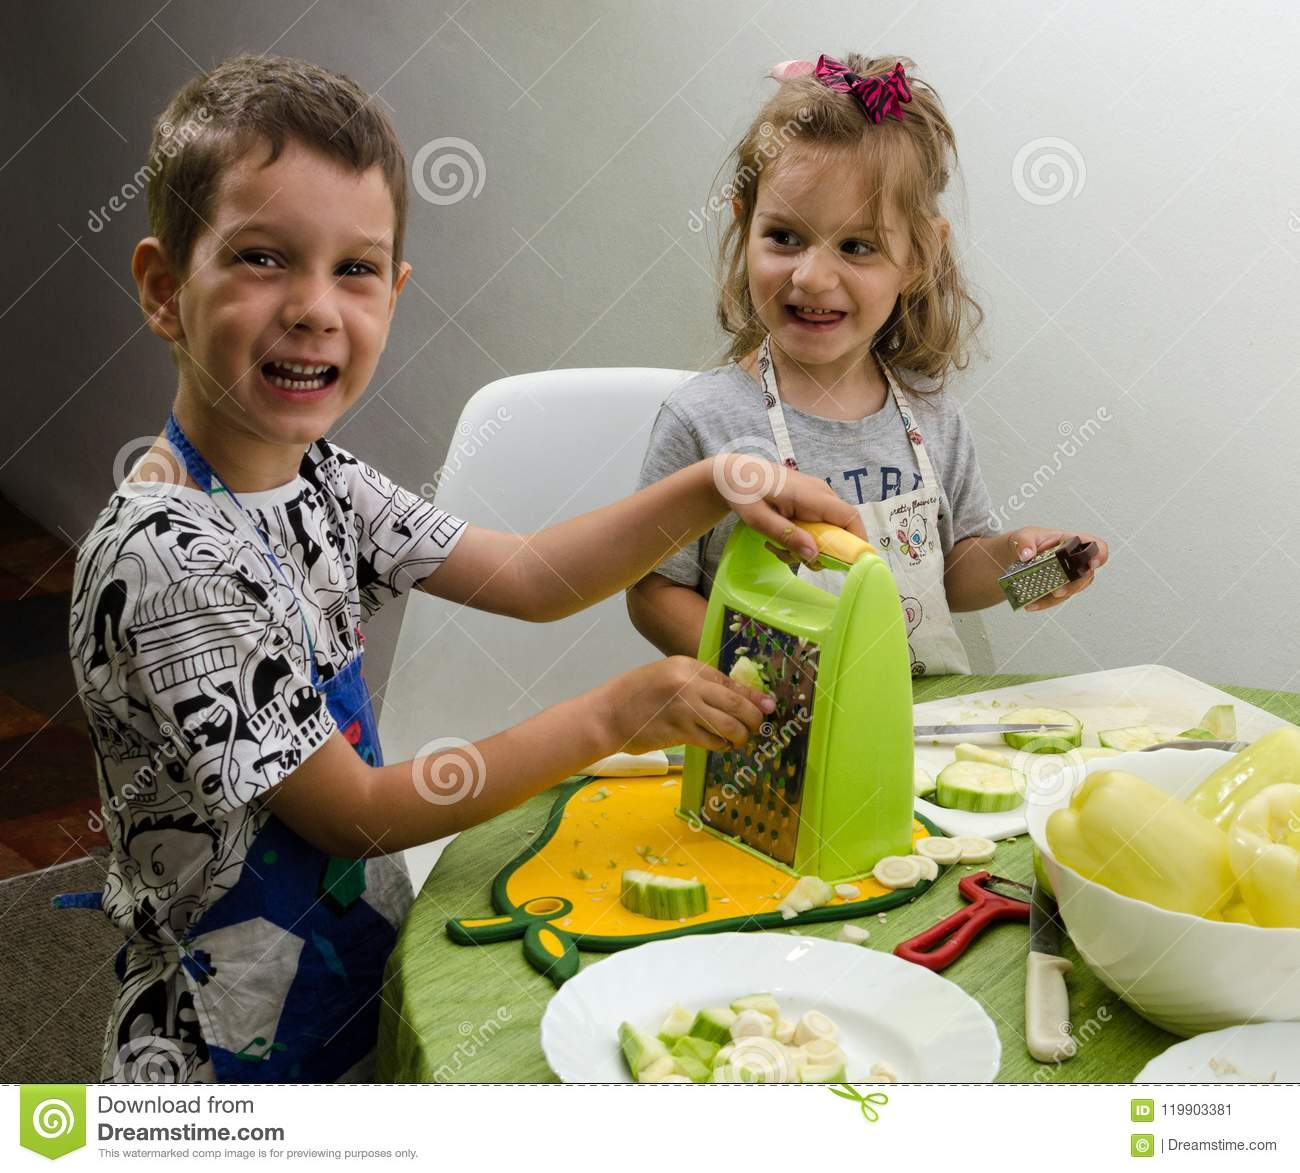 Two small children preparing a meal